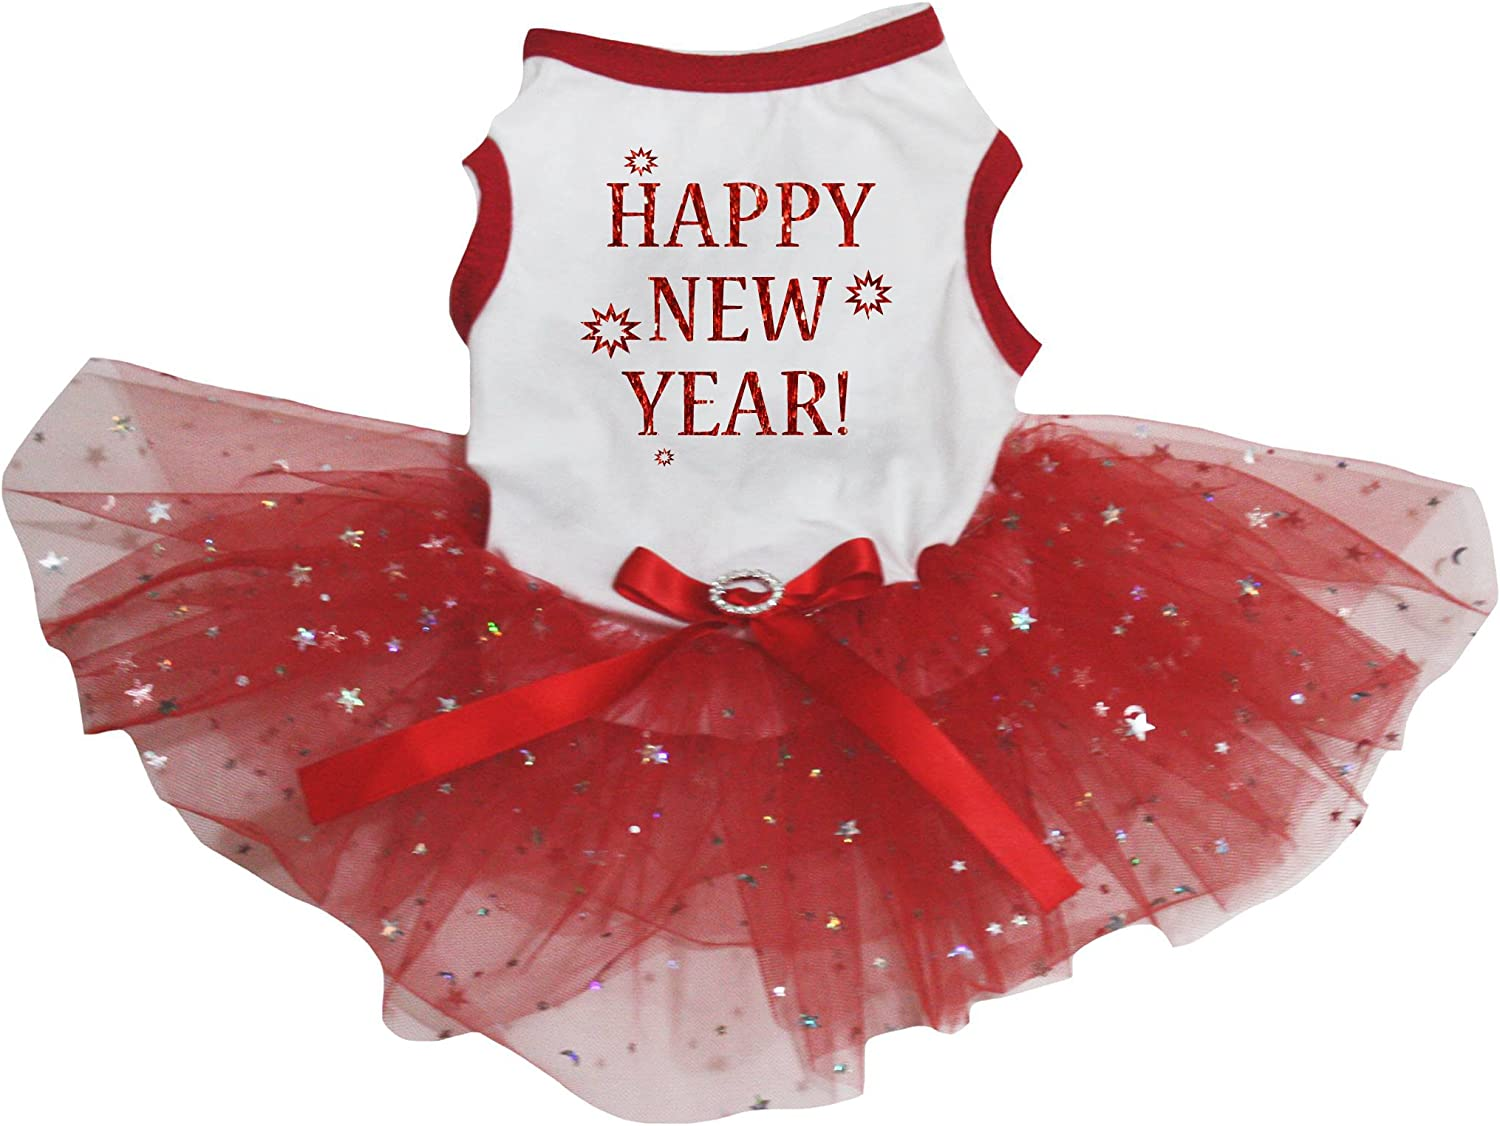 Puppy Dress in Scarelt Red with Butterfly Sleeves and a frilly ruffle in a Zoo Motif with a cute Yellow bow Puppy Clothes